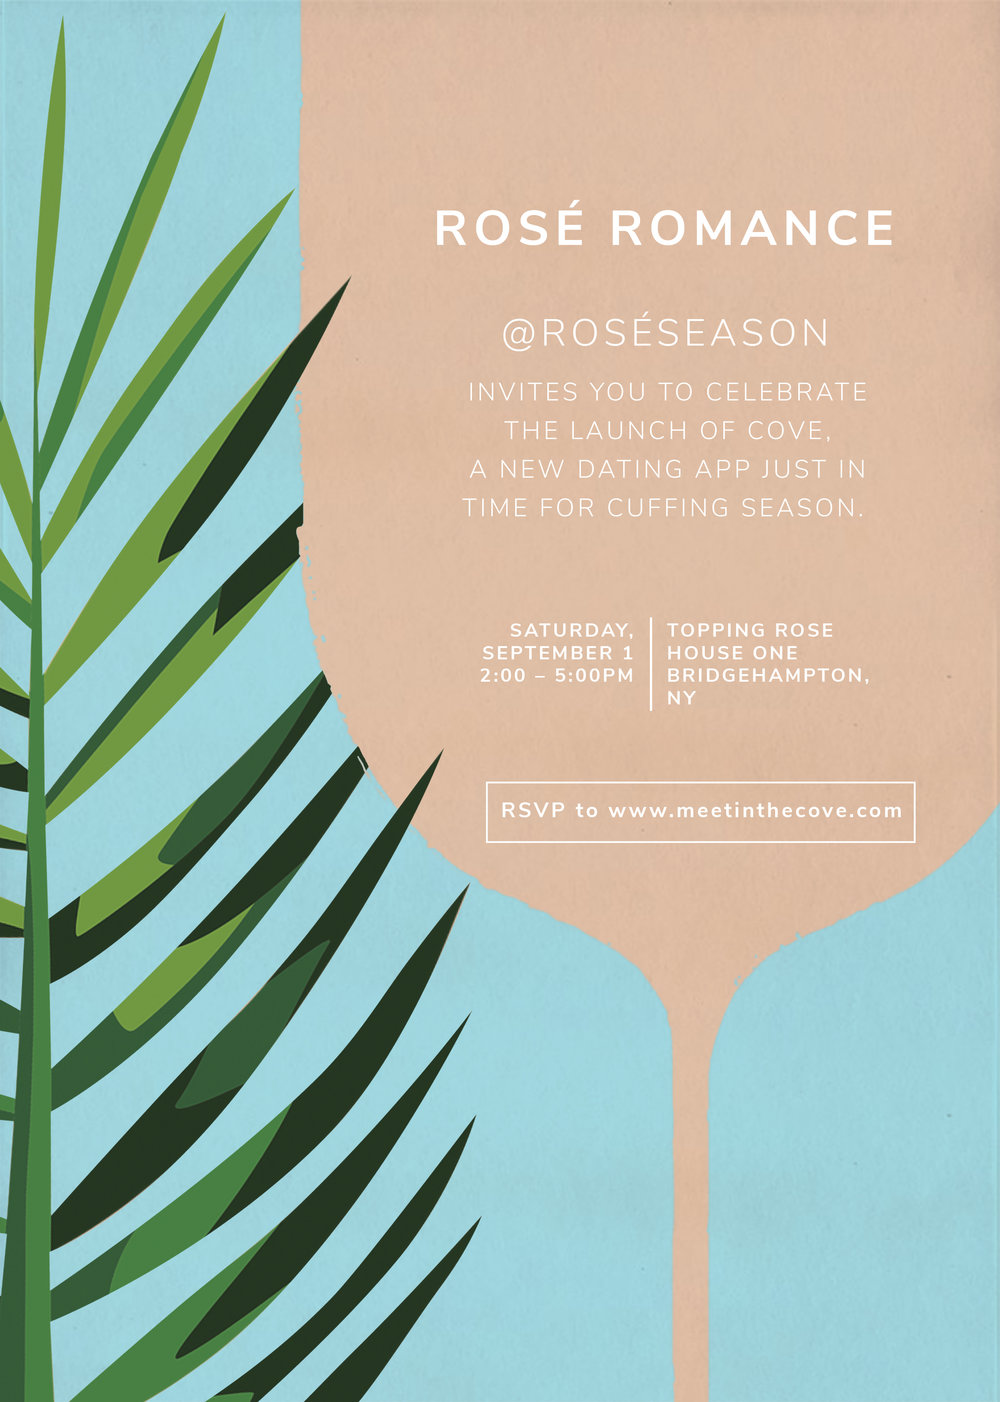 """Rosé Romance - Labor Day Weekend at Topping Rose House in Bridgehampton, NY, on Saturday, September 1st from 2:00-5:00PM, for the launch of Cove, a new dating app for progressing deeper conversations, without losing time! """"Cuffing season"""" is almost here which means we are putting Cove's matchmaking skills to the test as we say goodbye to summer. In the spirit of #RoséRomance, join us for speed dating, beats by DJ Rosé, a DIY flower bouquet station by East Olivia, and of course, curated Cove cocktails.Free admission.** Guests will need to sign a release form for Bravo TV's Summer House."""